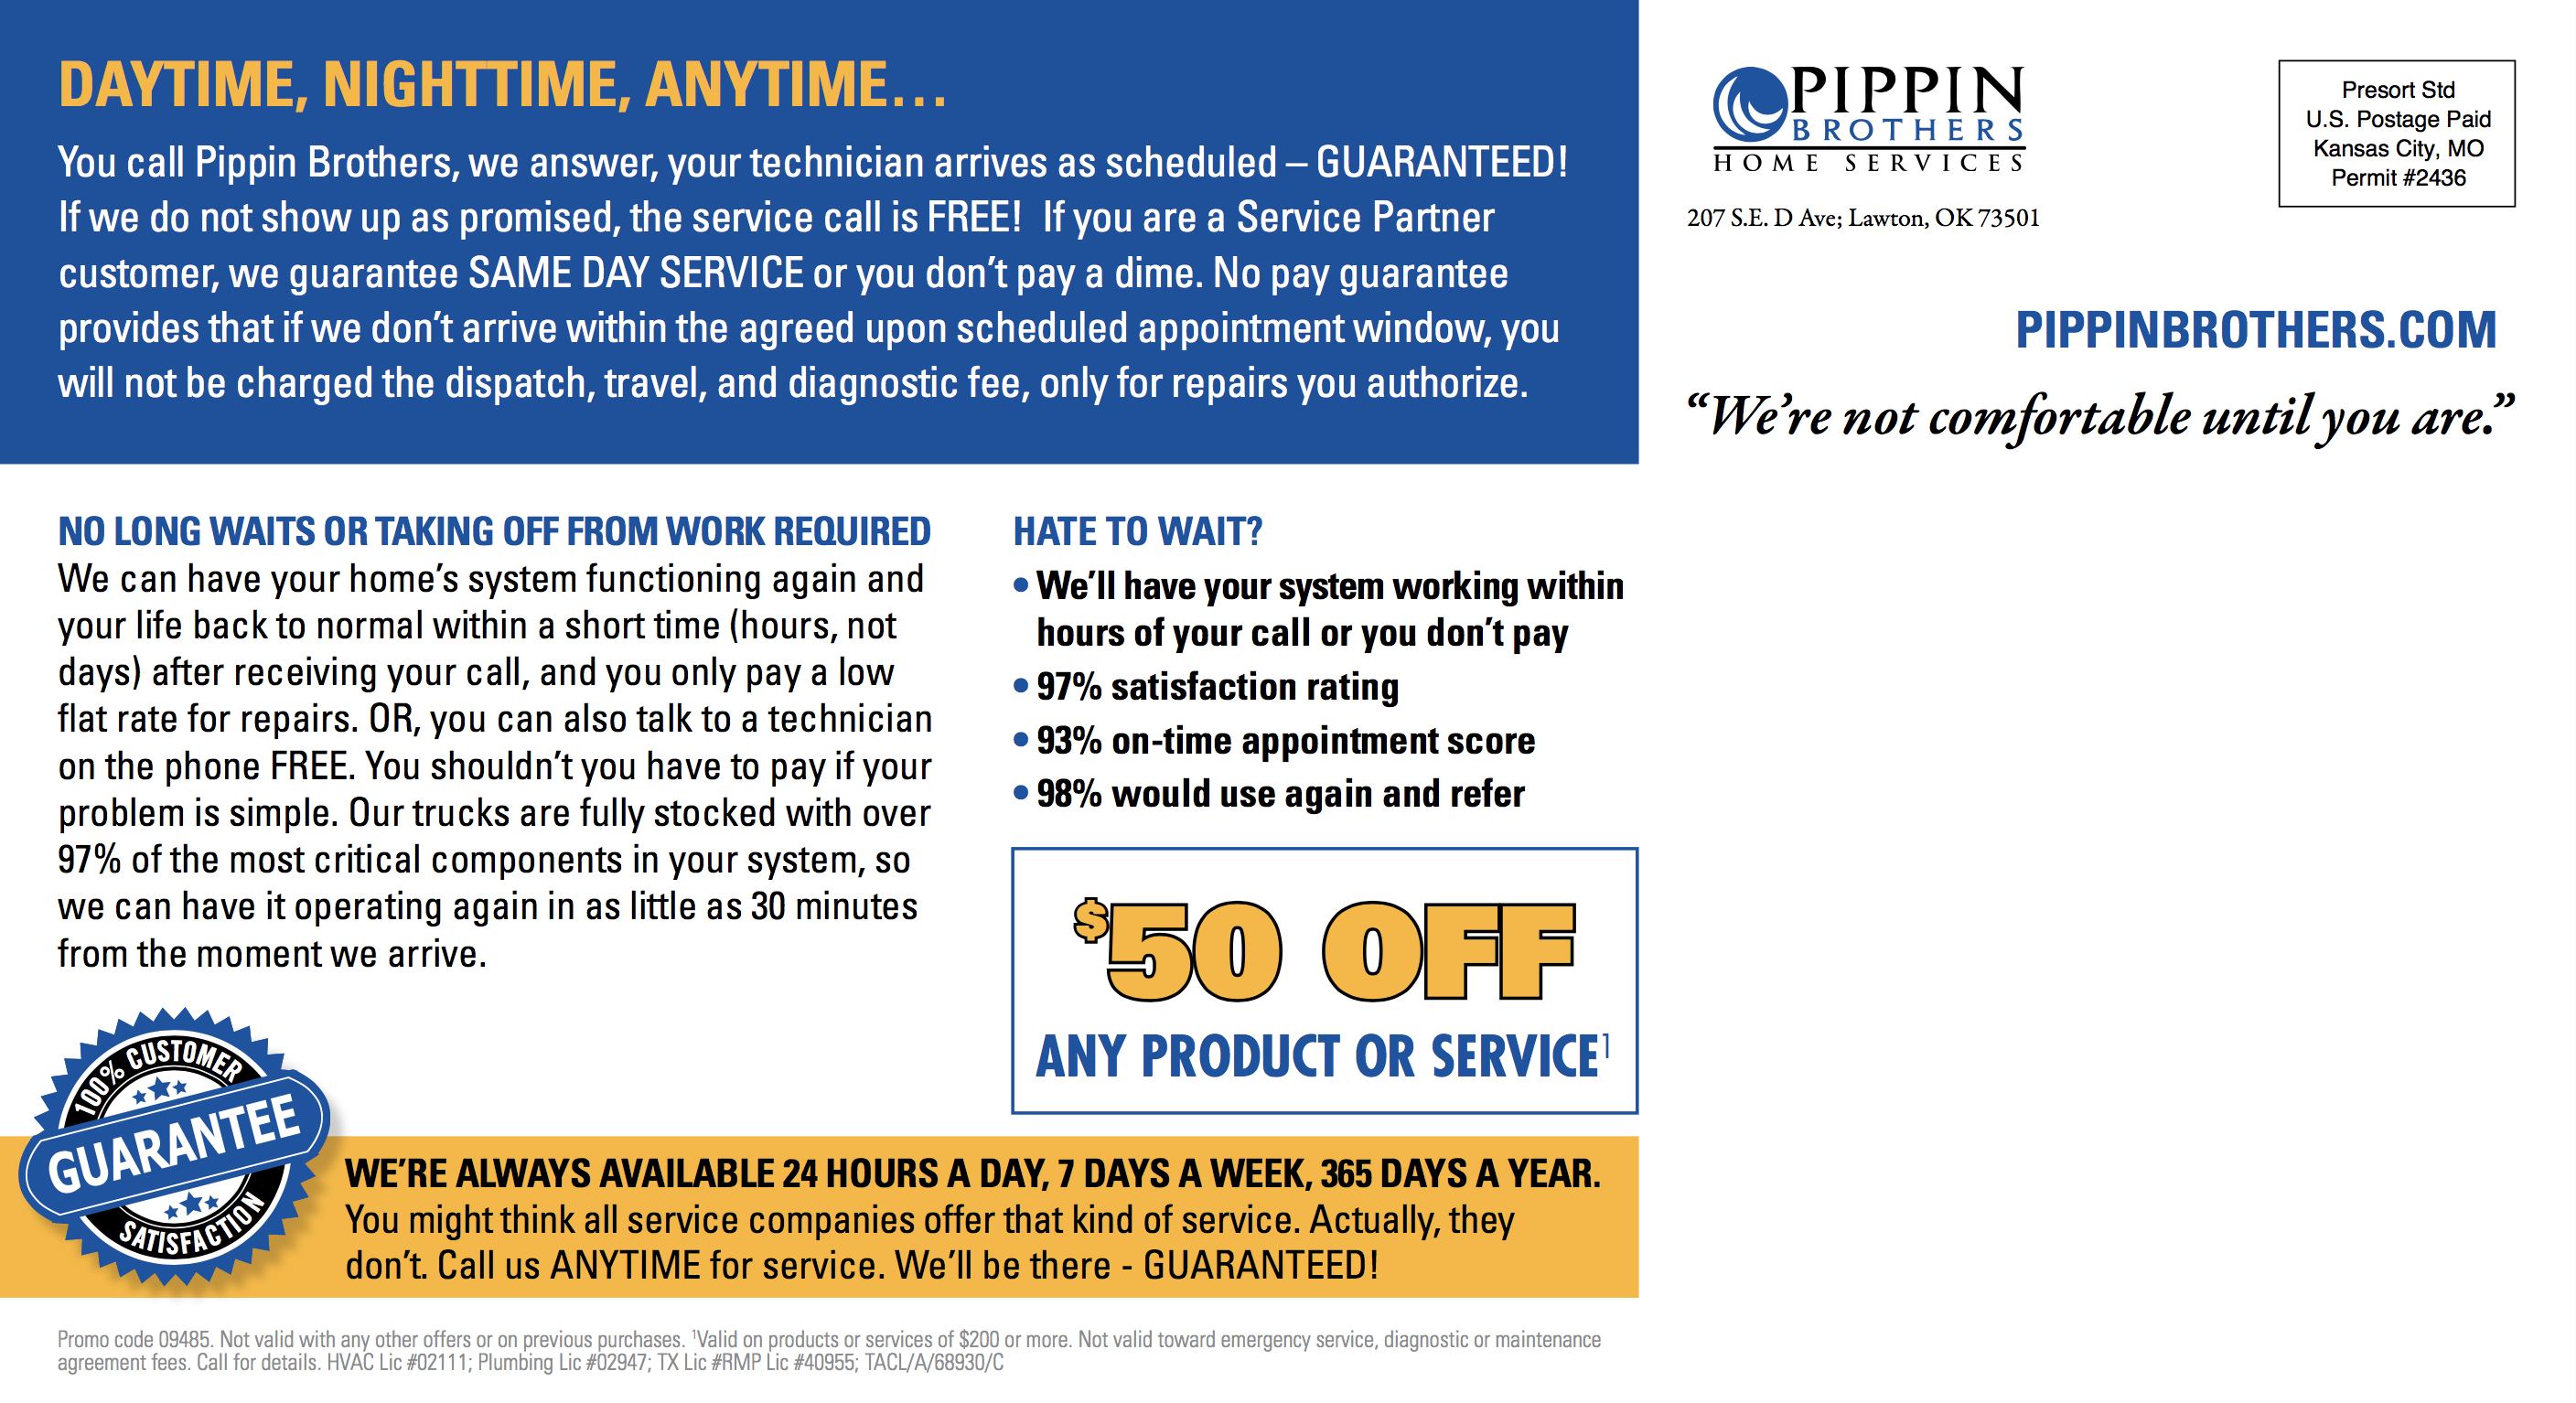 Pippin Brothers offers 24/7 service to homeowners in Lawton, Oklahoma and Wichita Falls, Texas